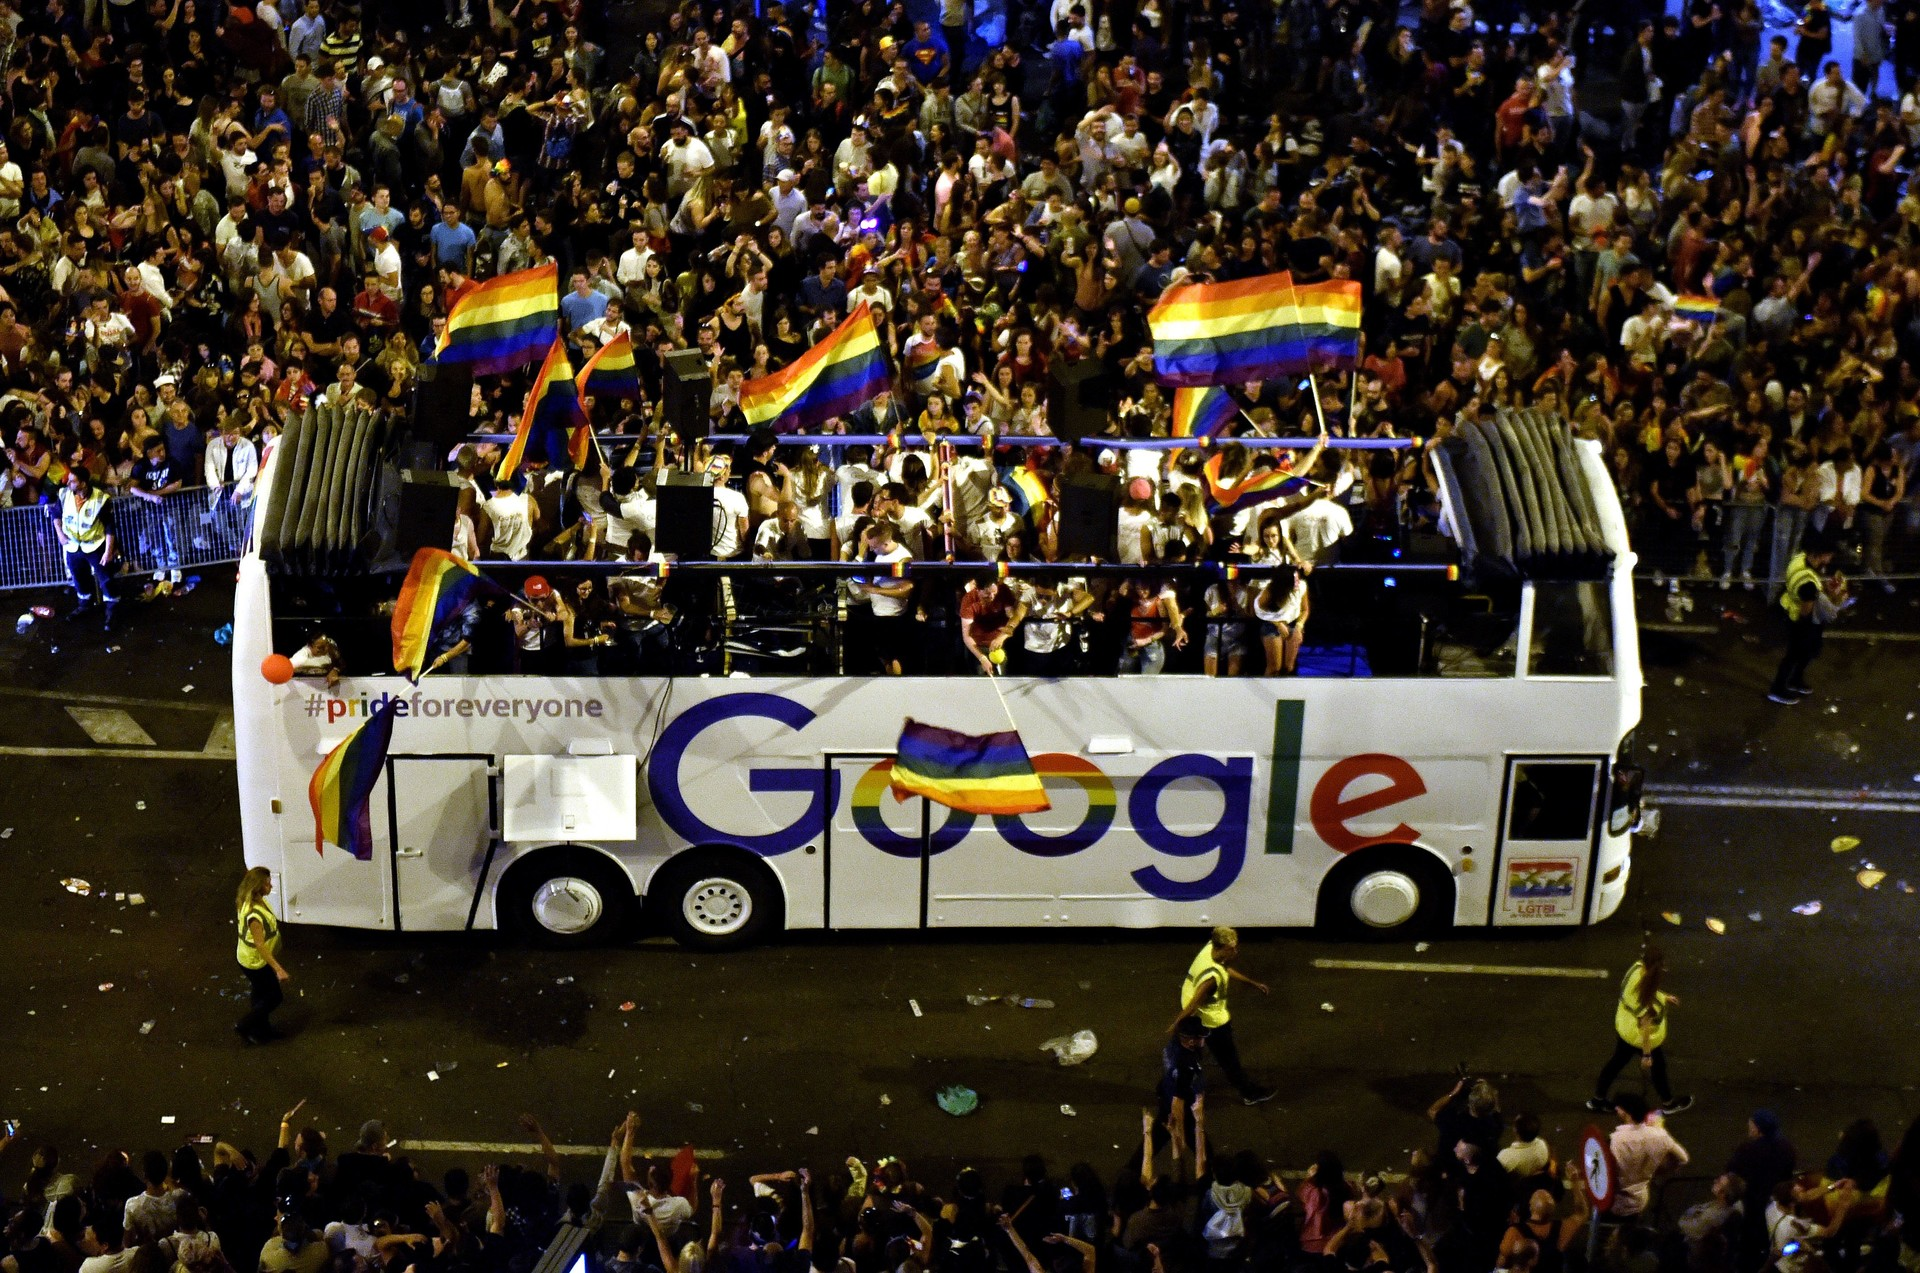 Google Won't Be Kicked Out of SF Pride — Despite Petition by its Own Employees